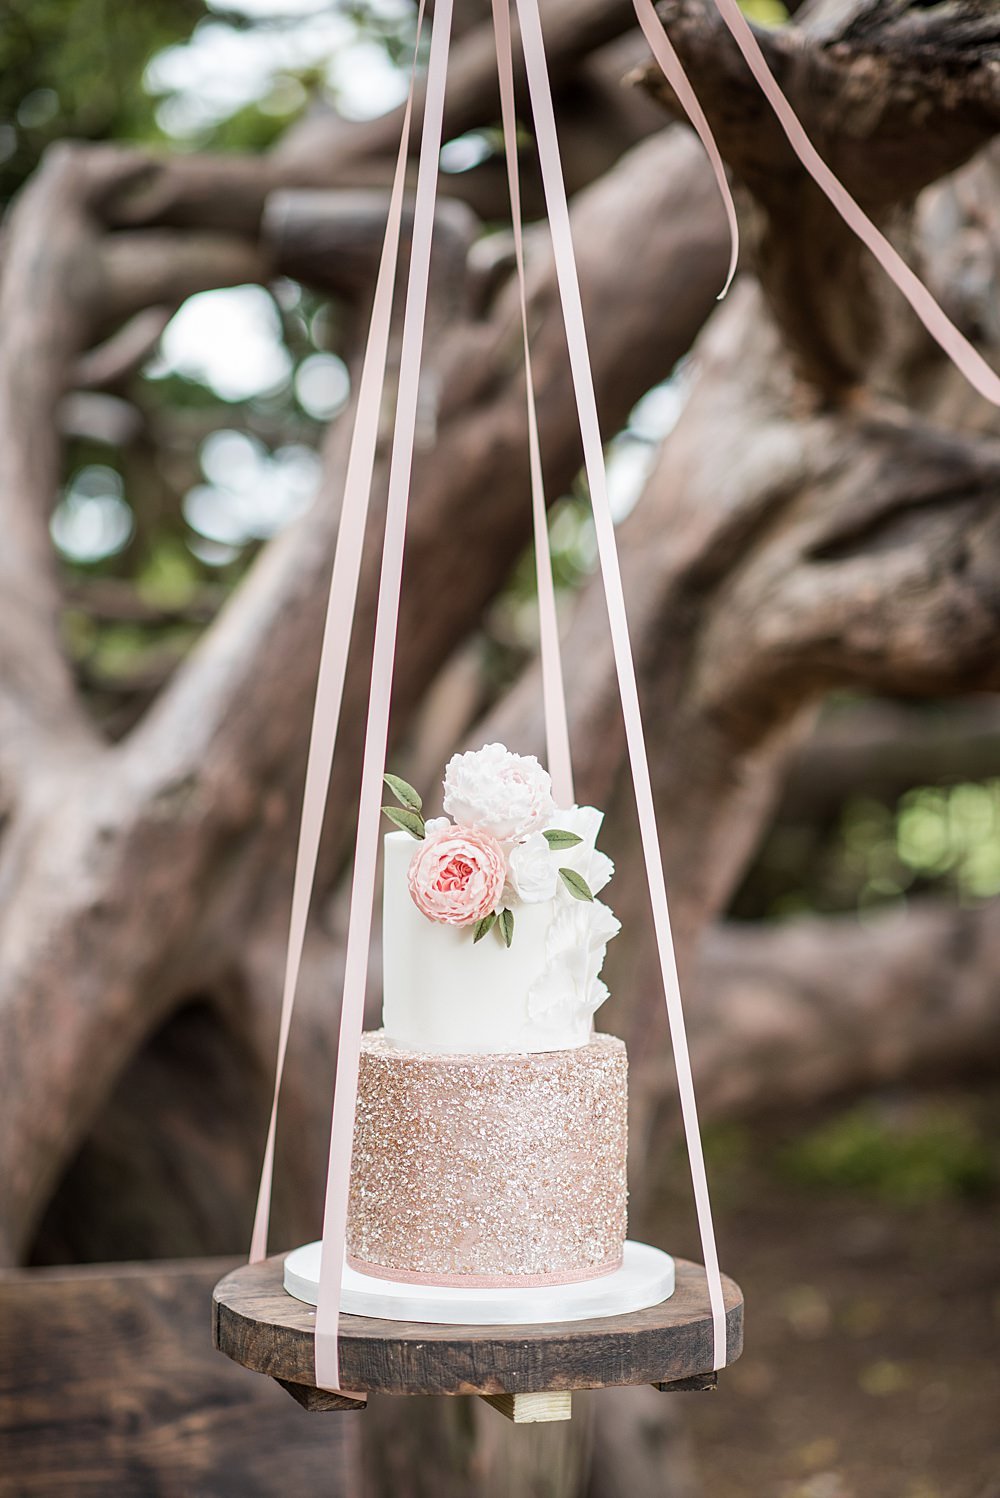 Cake Swing Table Glitter Floral Flowers Peach Gold Wedding Ideas Jane Beadnell Photography